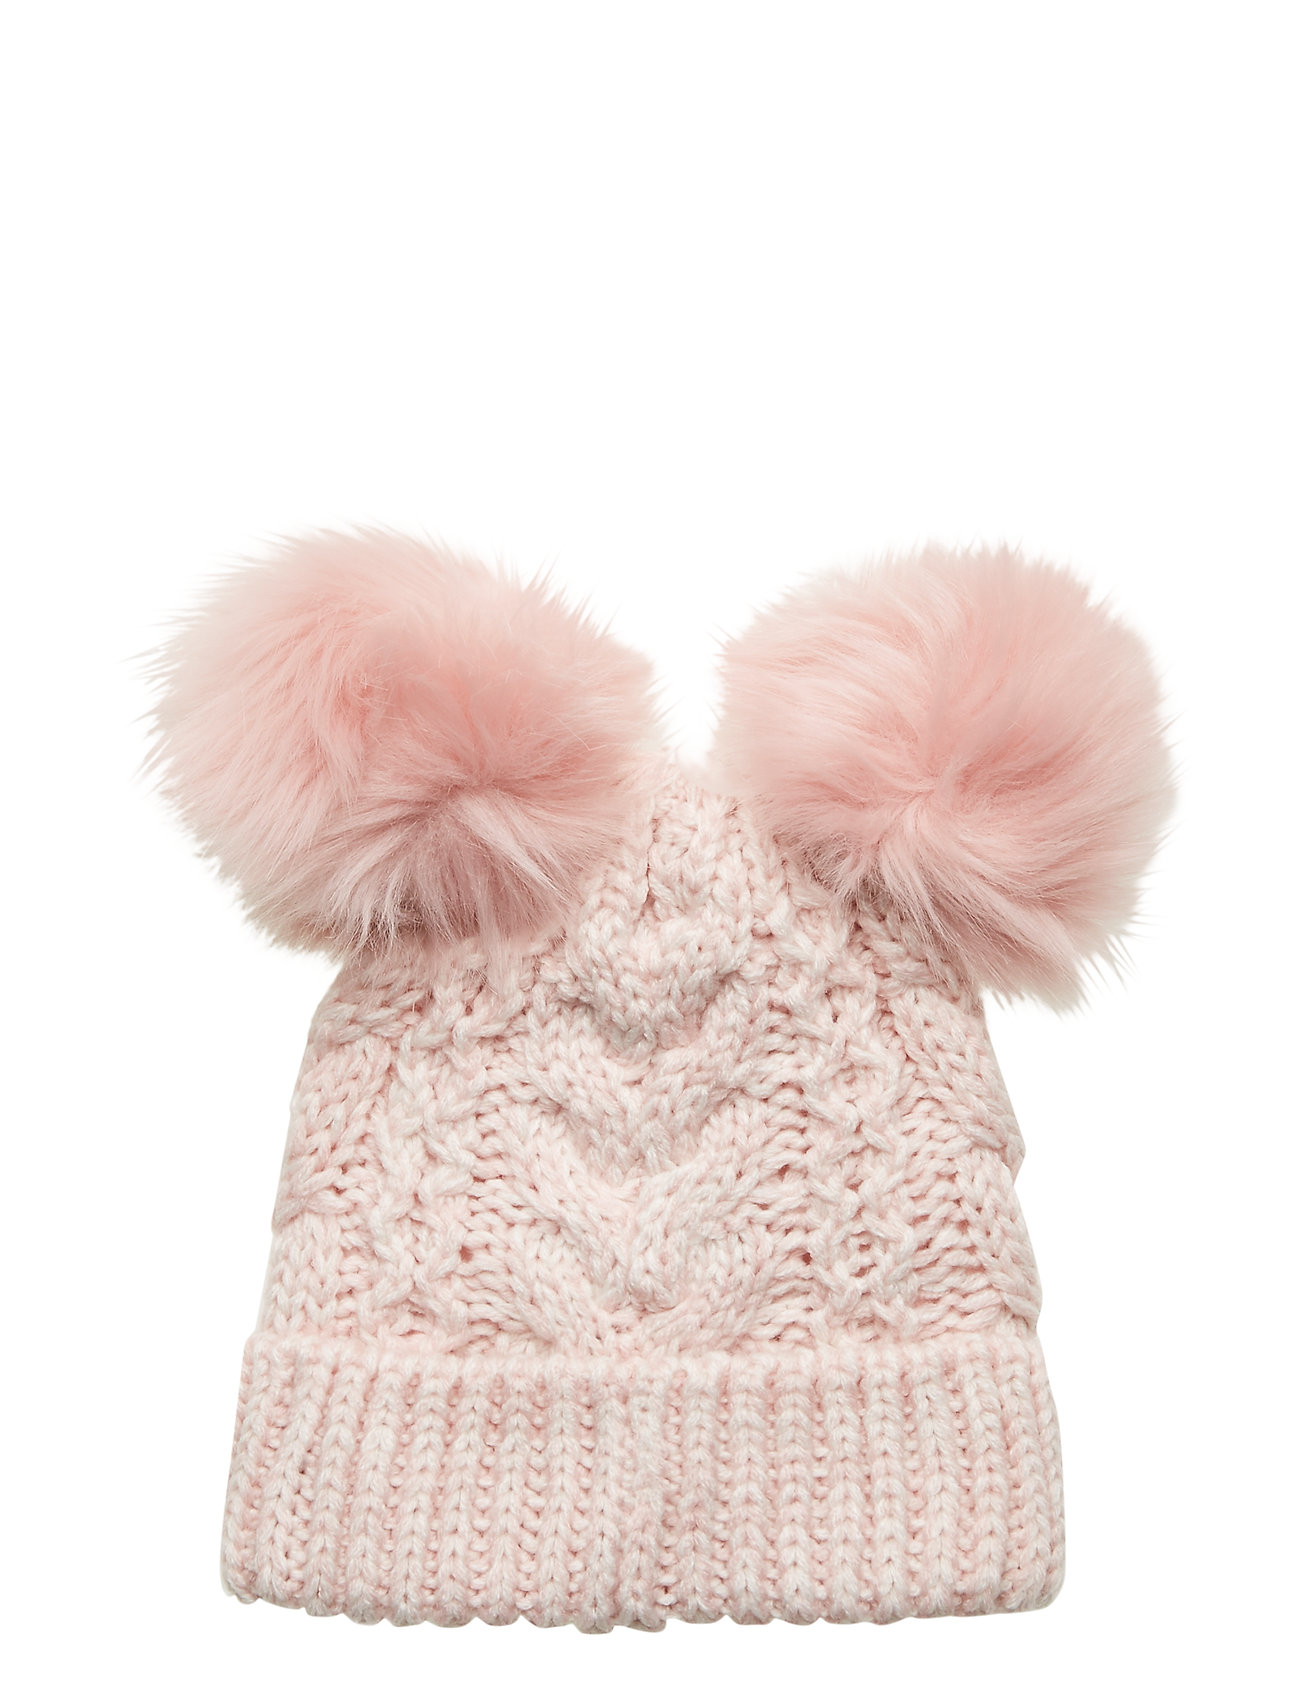 GAP TG OC CABLE HAT - PINK STANDARD